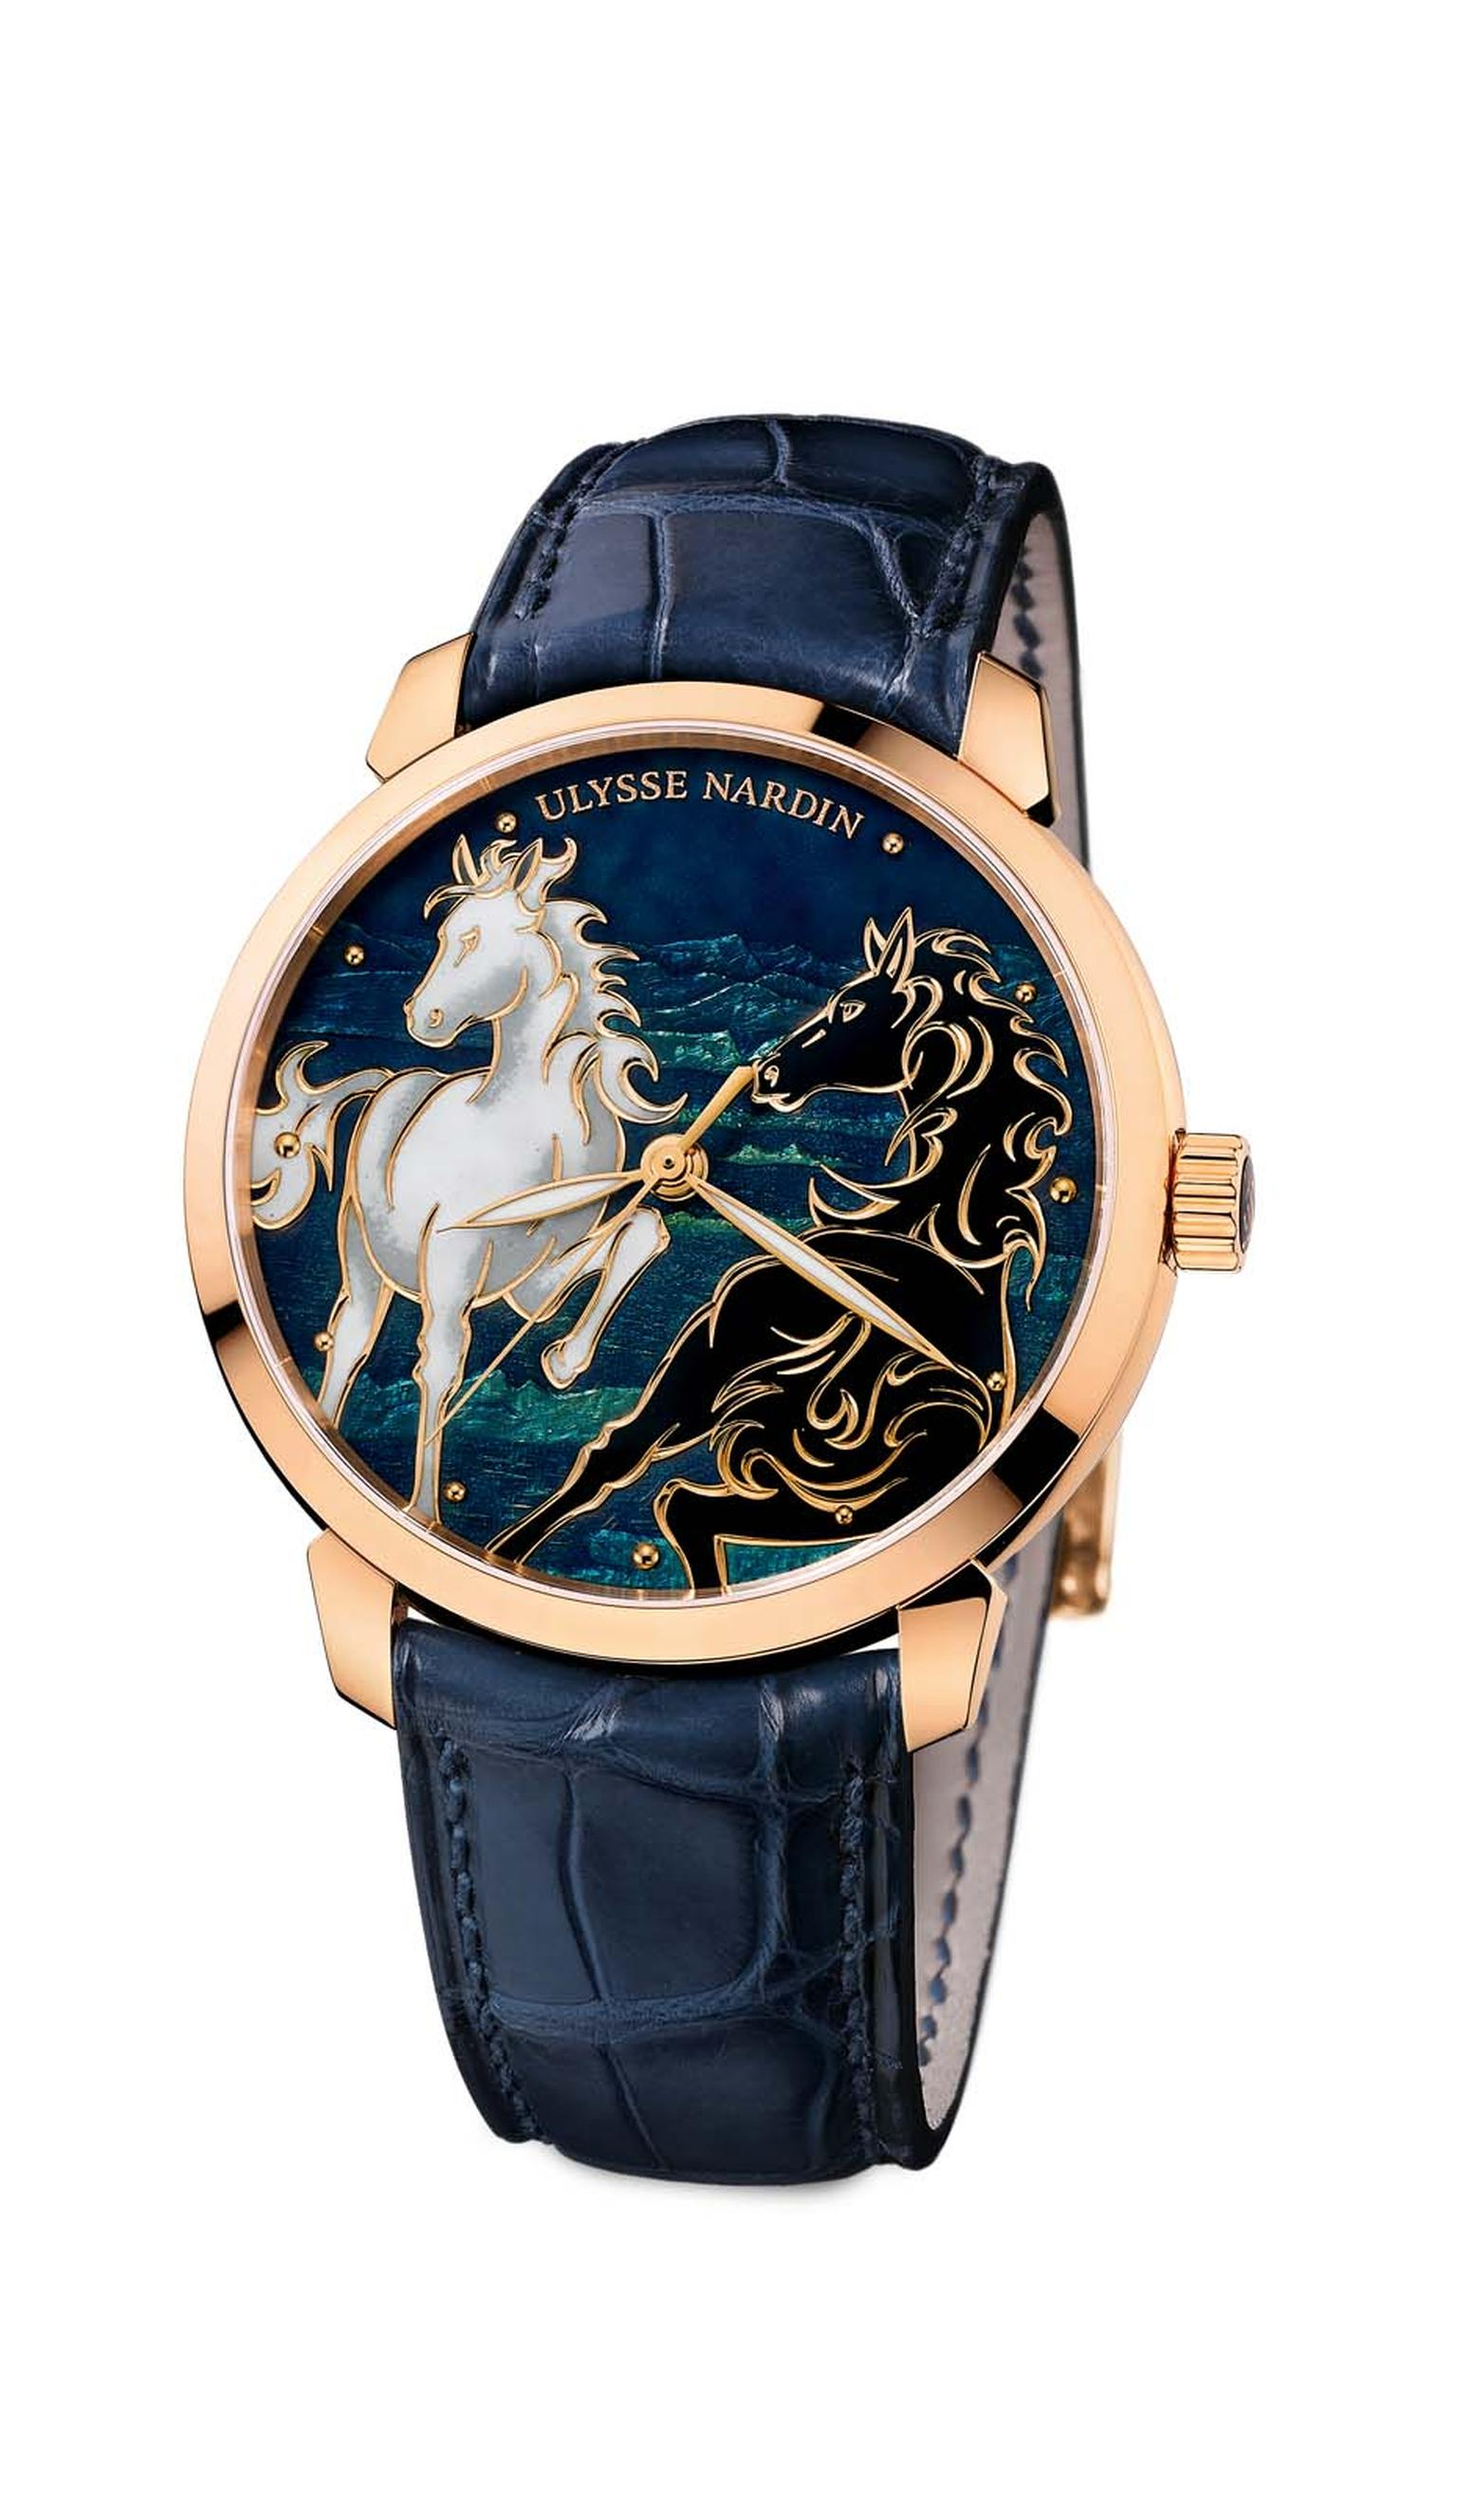 Ulysse Nardin's Classico Horse timepiece